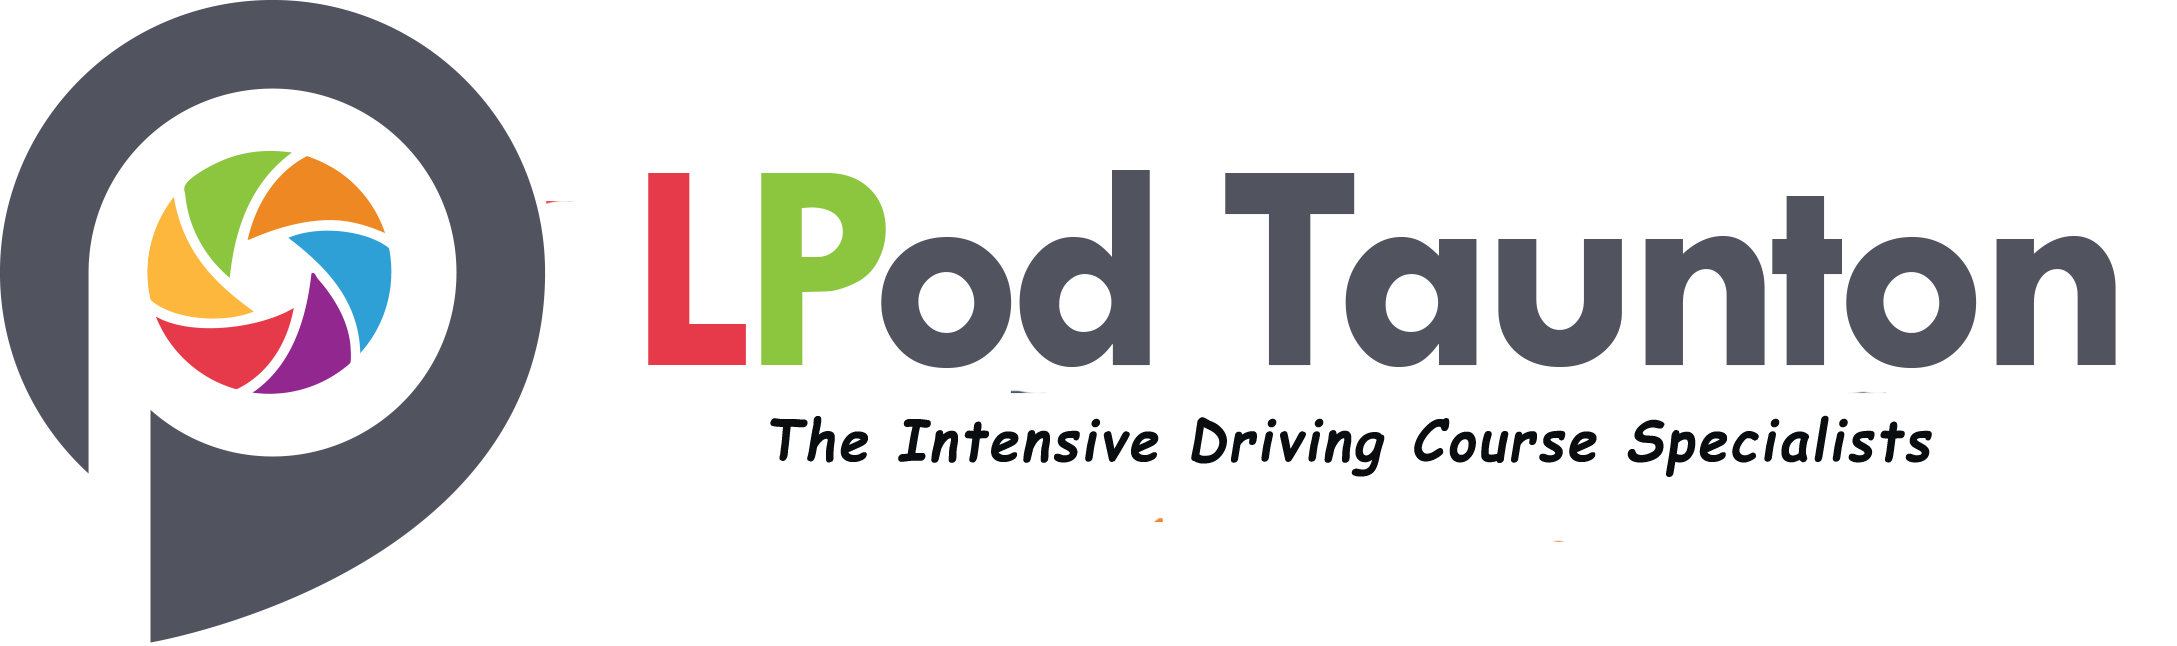 intensive driving courses taunton, intensive driving lessons taunton, intensive driving school taunton